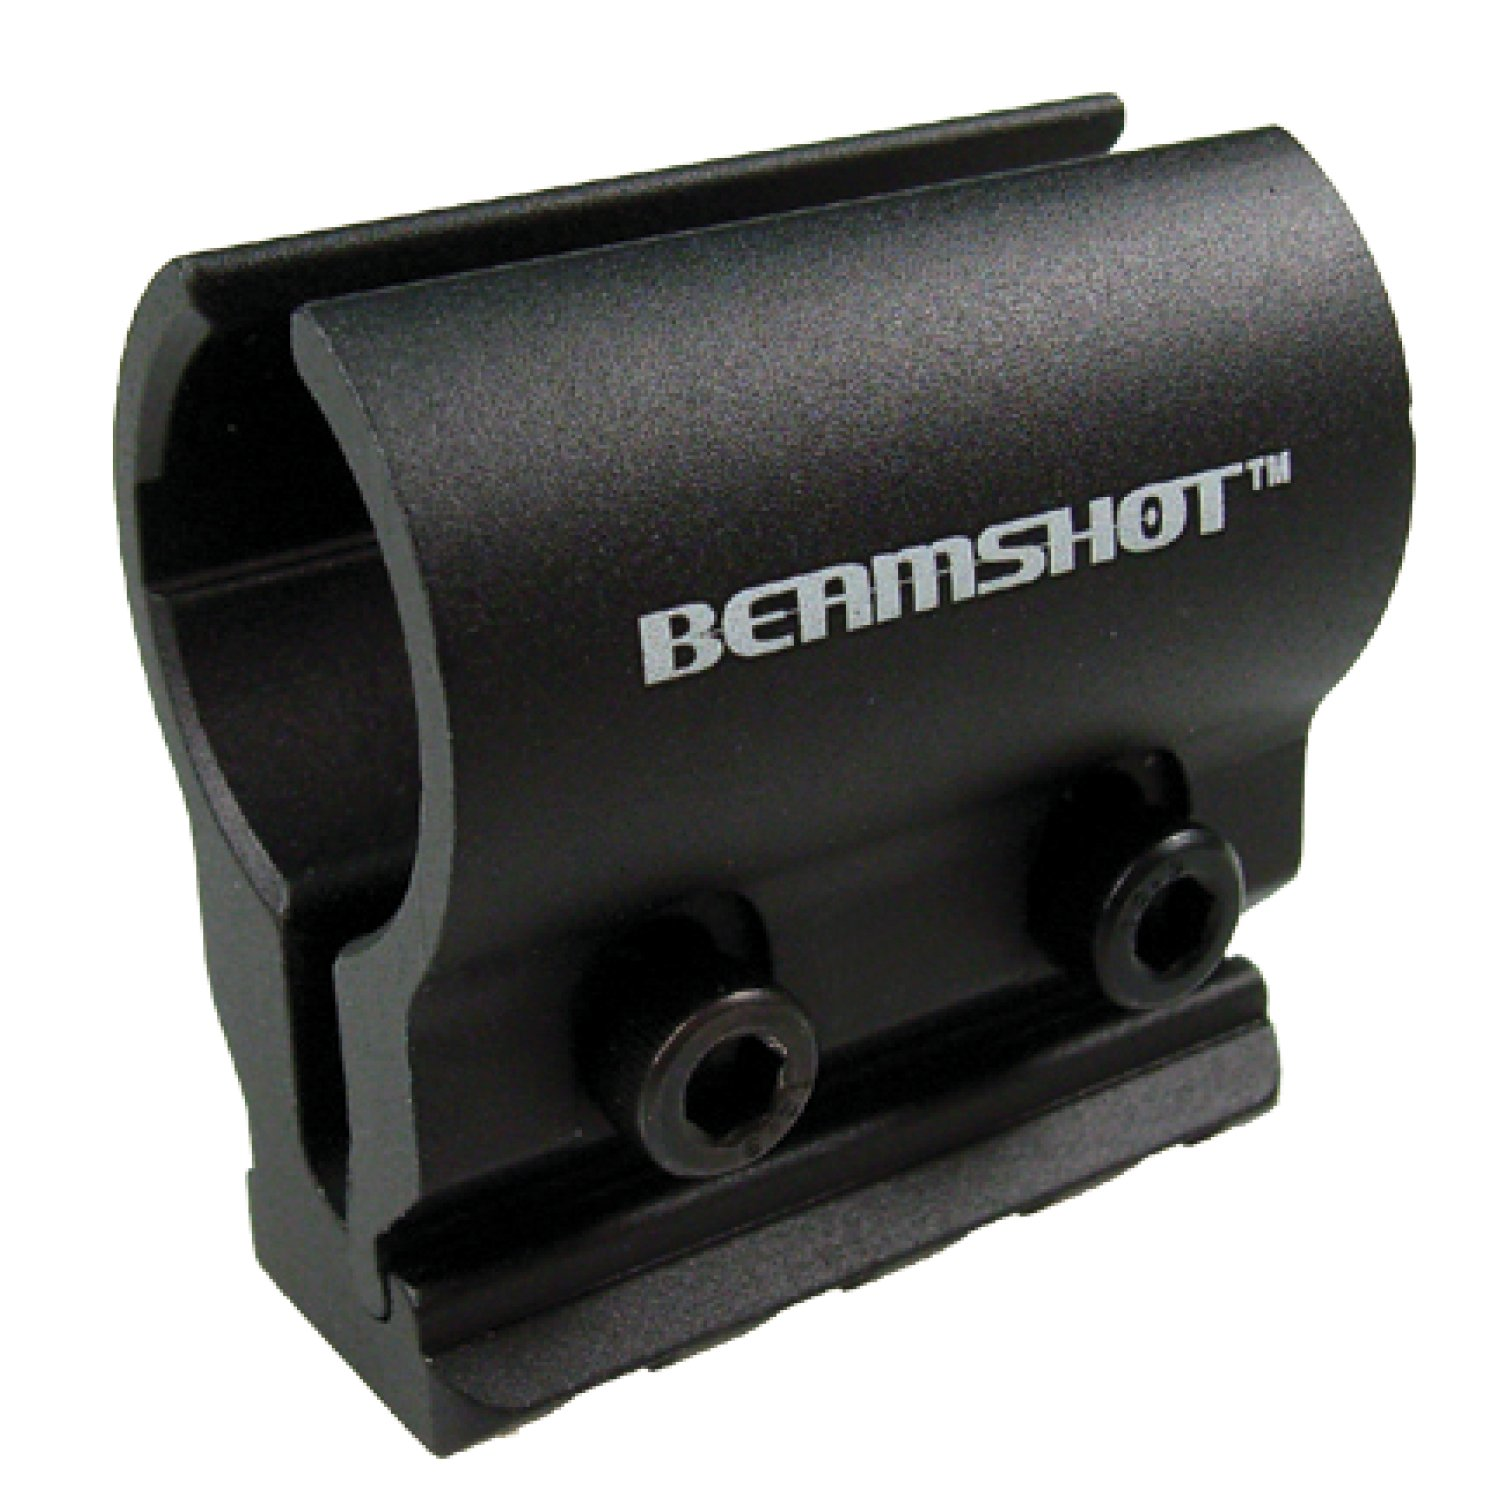 Beamshot RF9 Mount: Attaches to All Rifles, Shotguns & Airsoft Guns to Create a Standard 1913 Picatinny Rail System Which Will Accommodate All Types of Laser & Flashlight Accessories by Beamshot